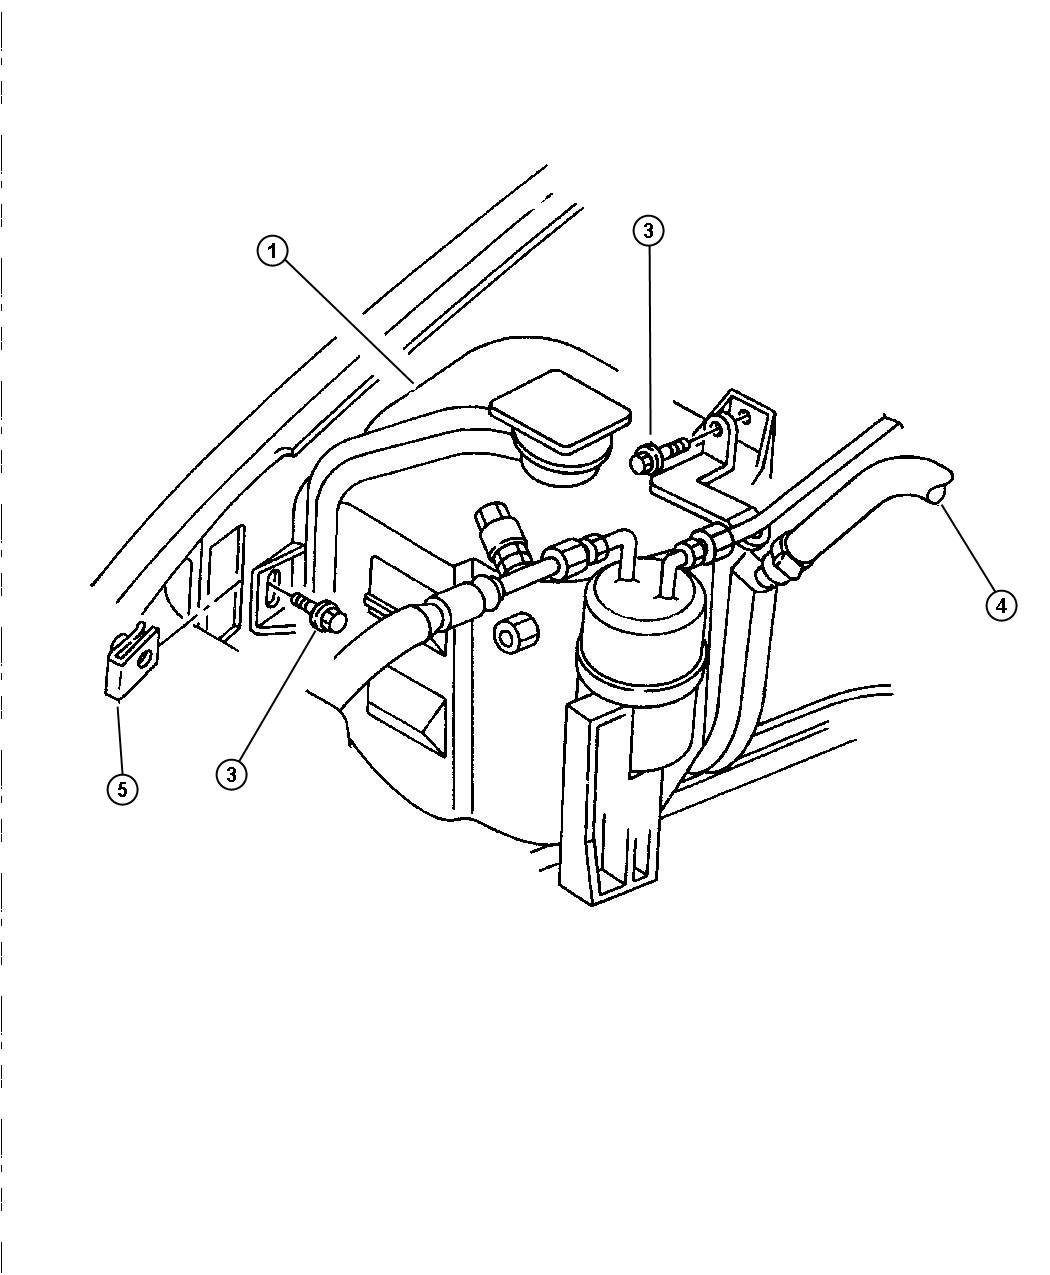 Chrysler Town Amp Country Used For Screw And Washer